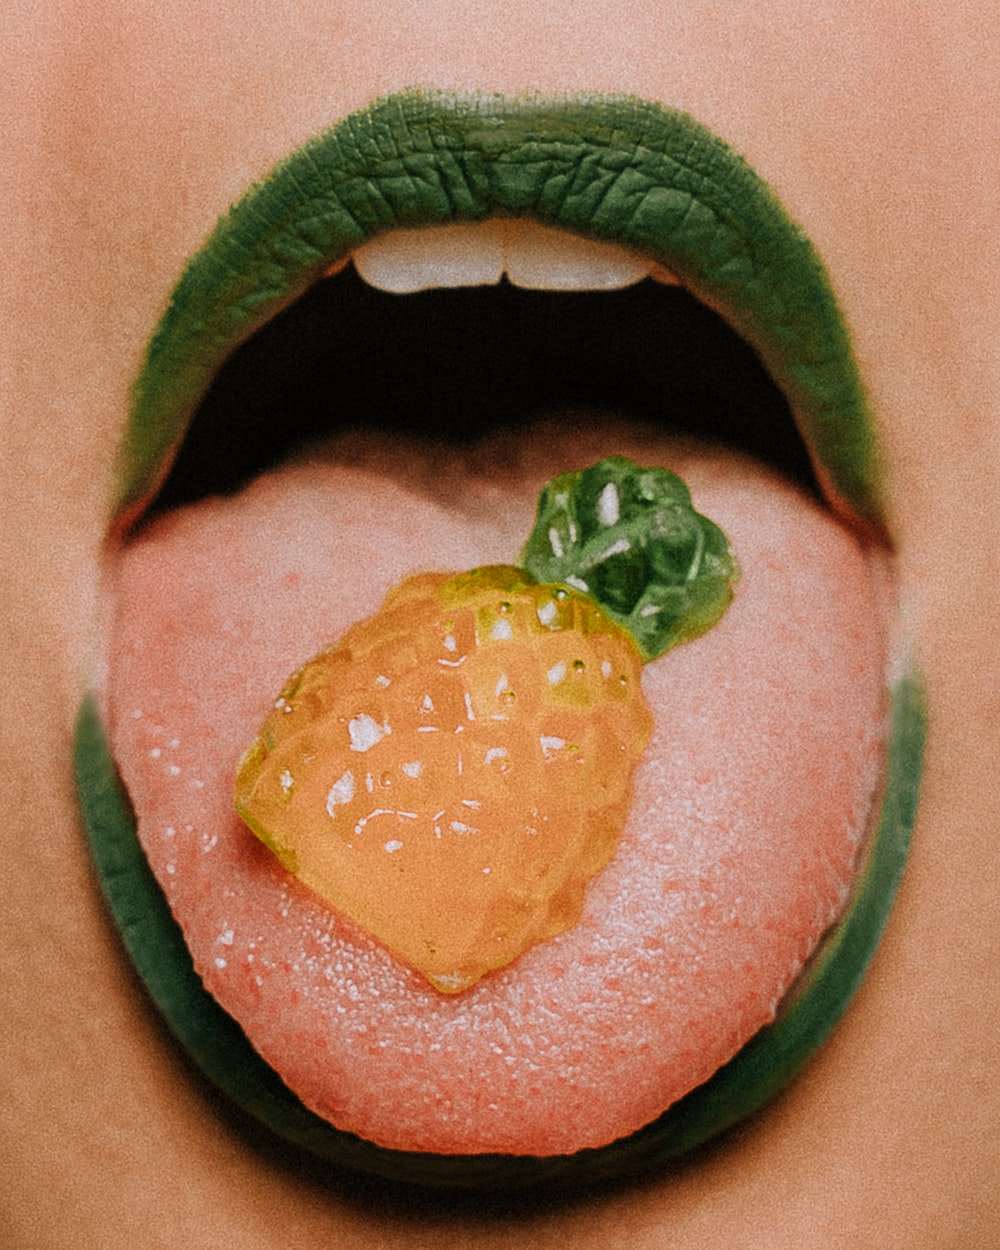 person showing tongue with pineapple candy